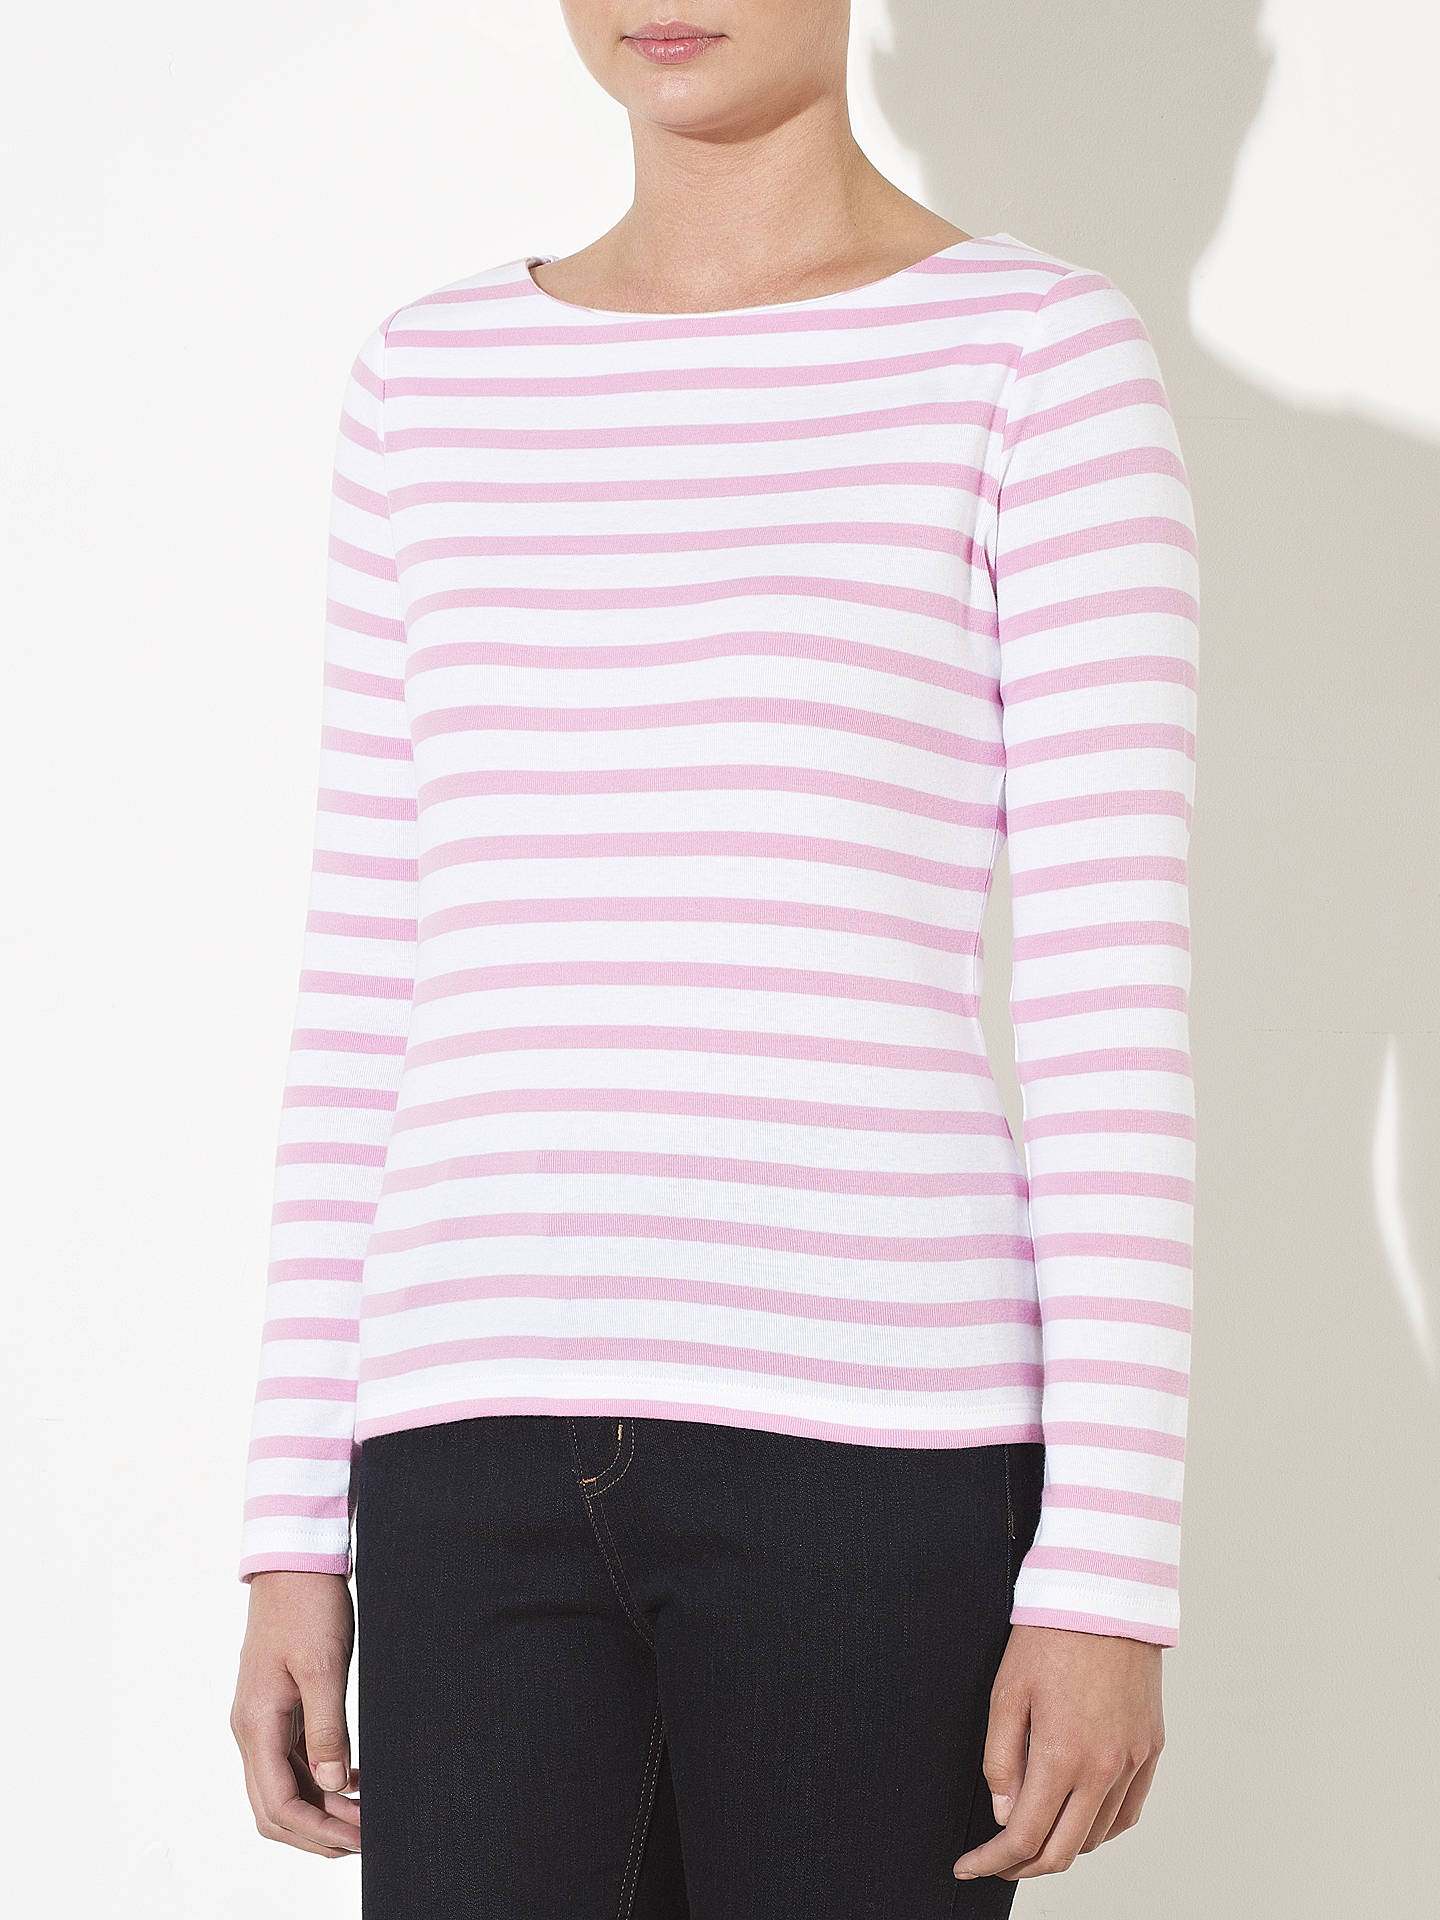 Buy John Lewis Long Sleeve Breton Stripe Top, White / Pale Lilac, 18 Online at johnlewis.com